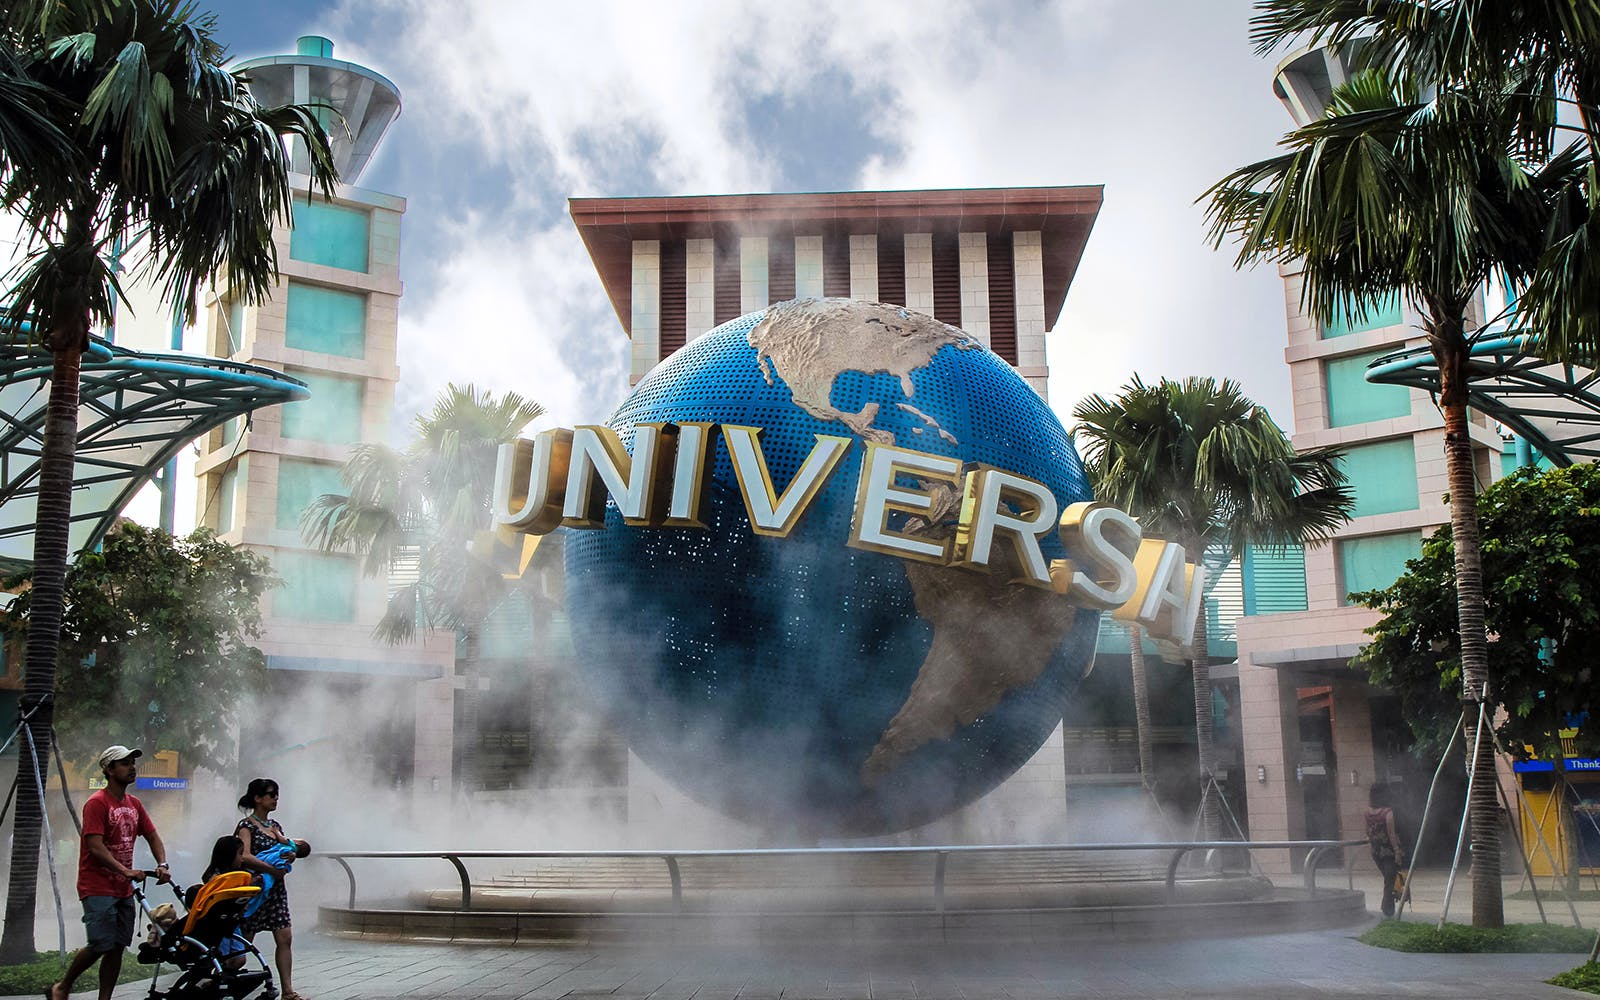 Ultimative Kombination: Universal Studios + Adventure Cove Wasserpark + S.E.A. Aquarium